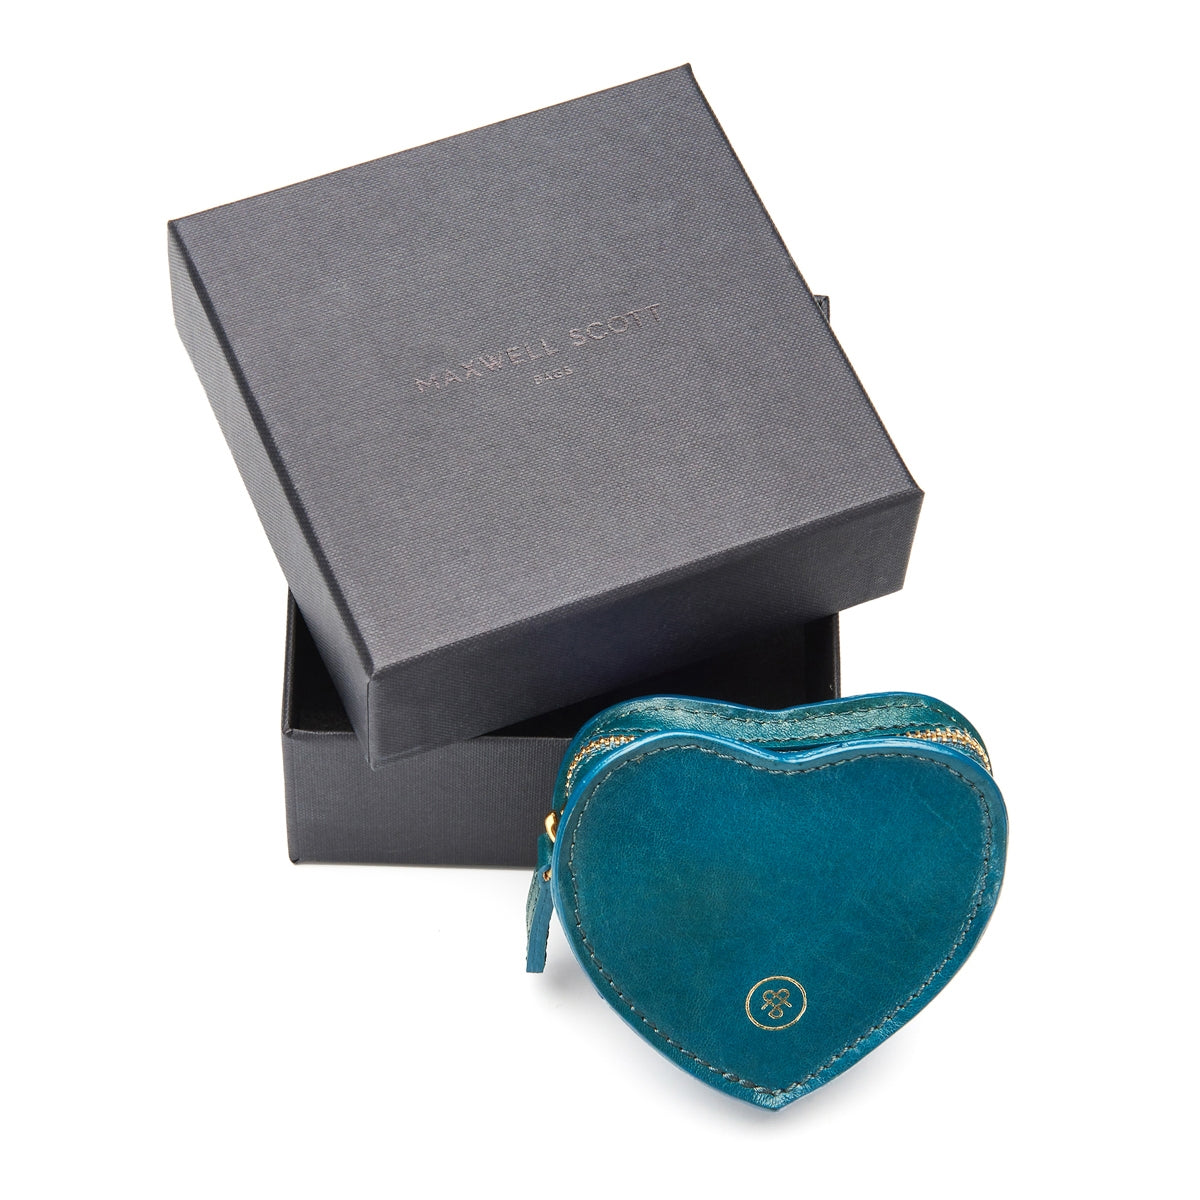 Image 6 of the 'Mirabella' Petrol Leather Heart-Shaped Coin Purse